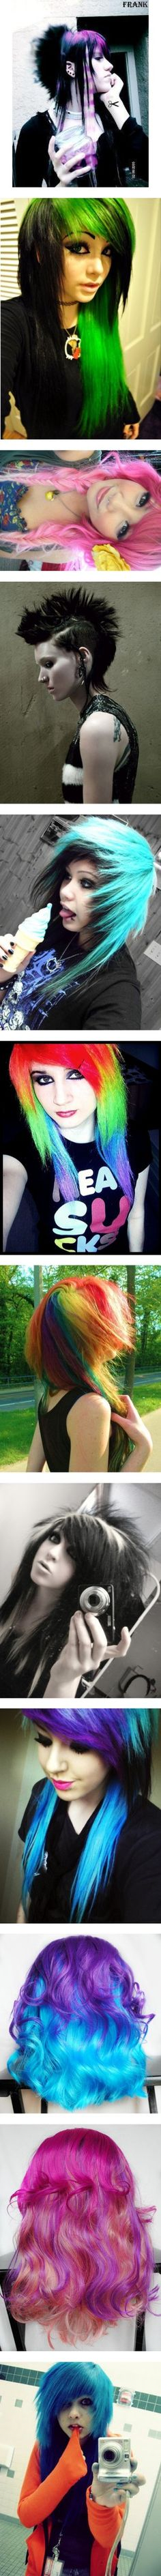 """""""awsome hairstyles"""" by littlemissvengeance13 ❤ liked on Polyvore"""